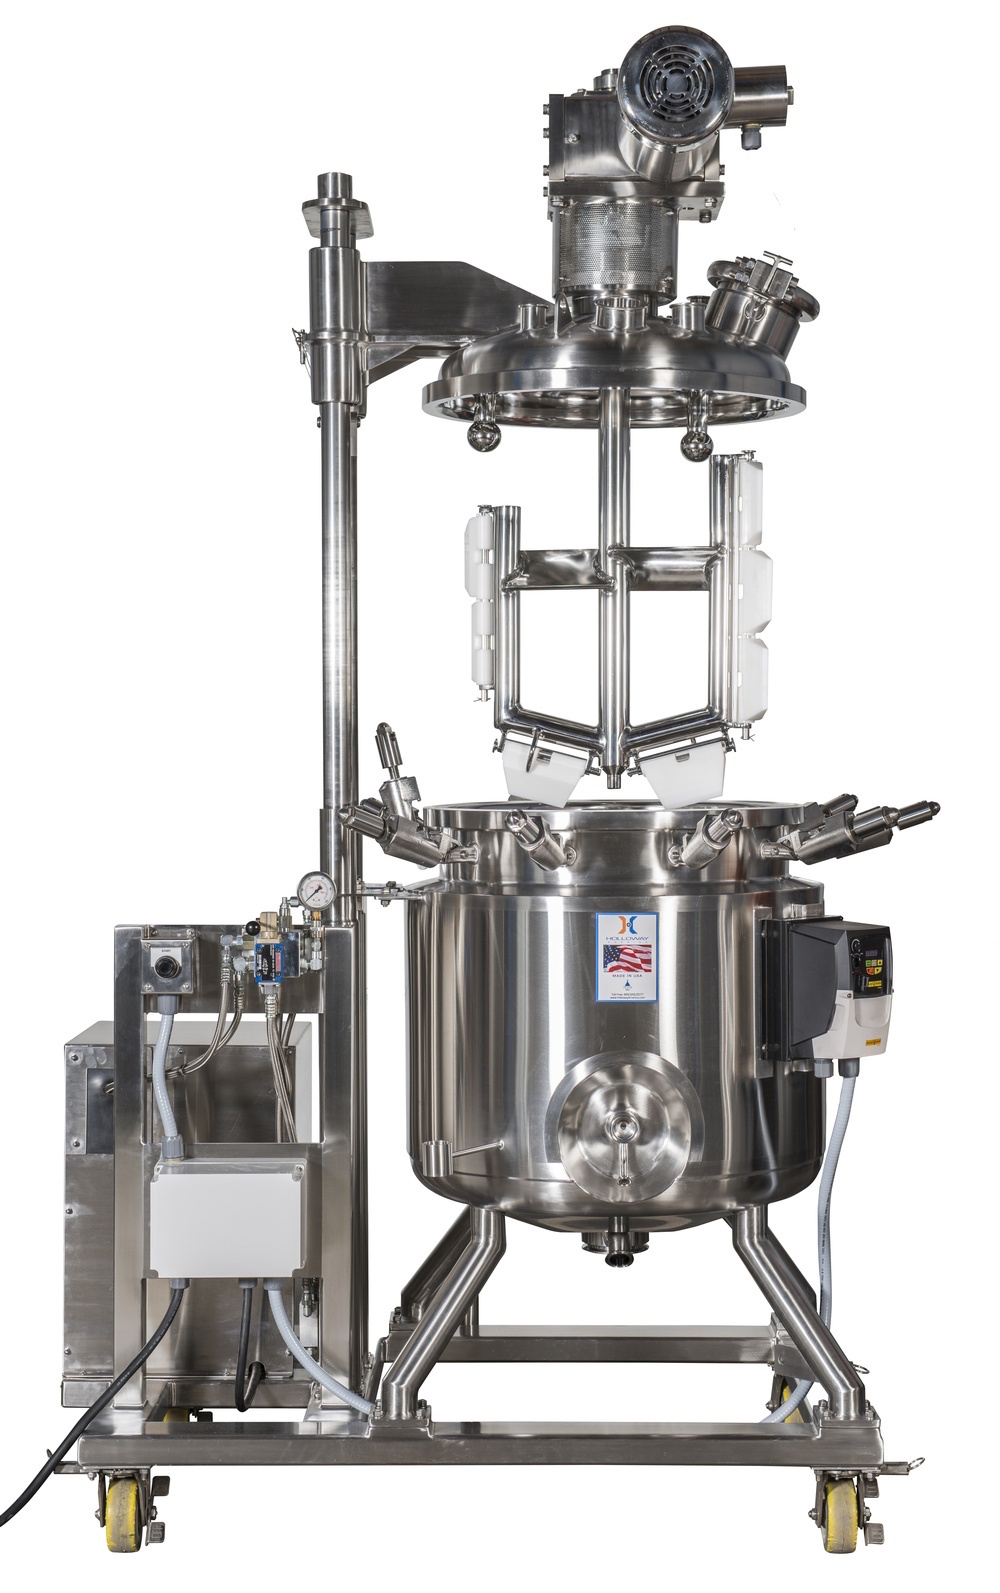 Stainless steel tank design with a control panel takes pressure vessels to the next level.